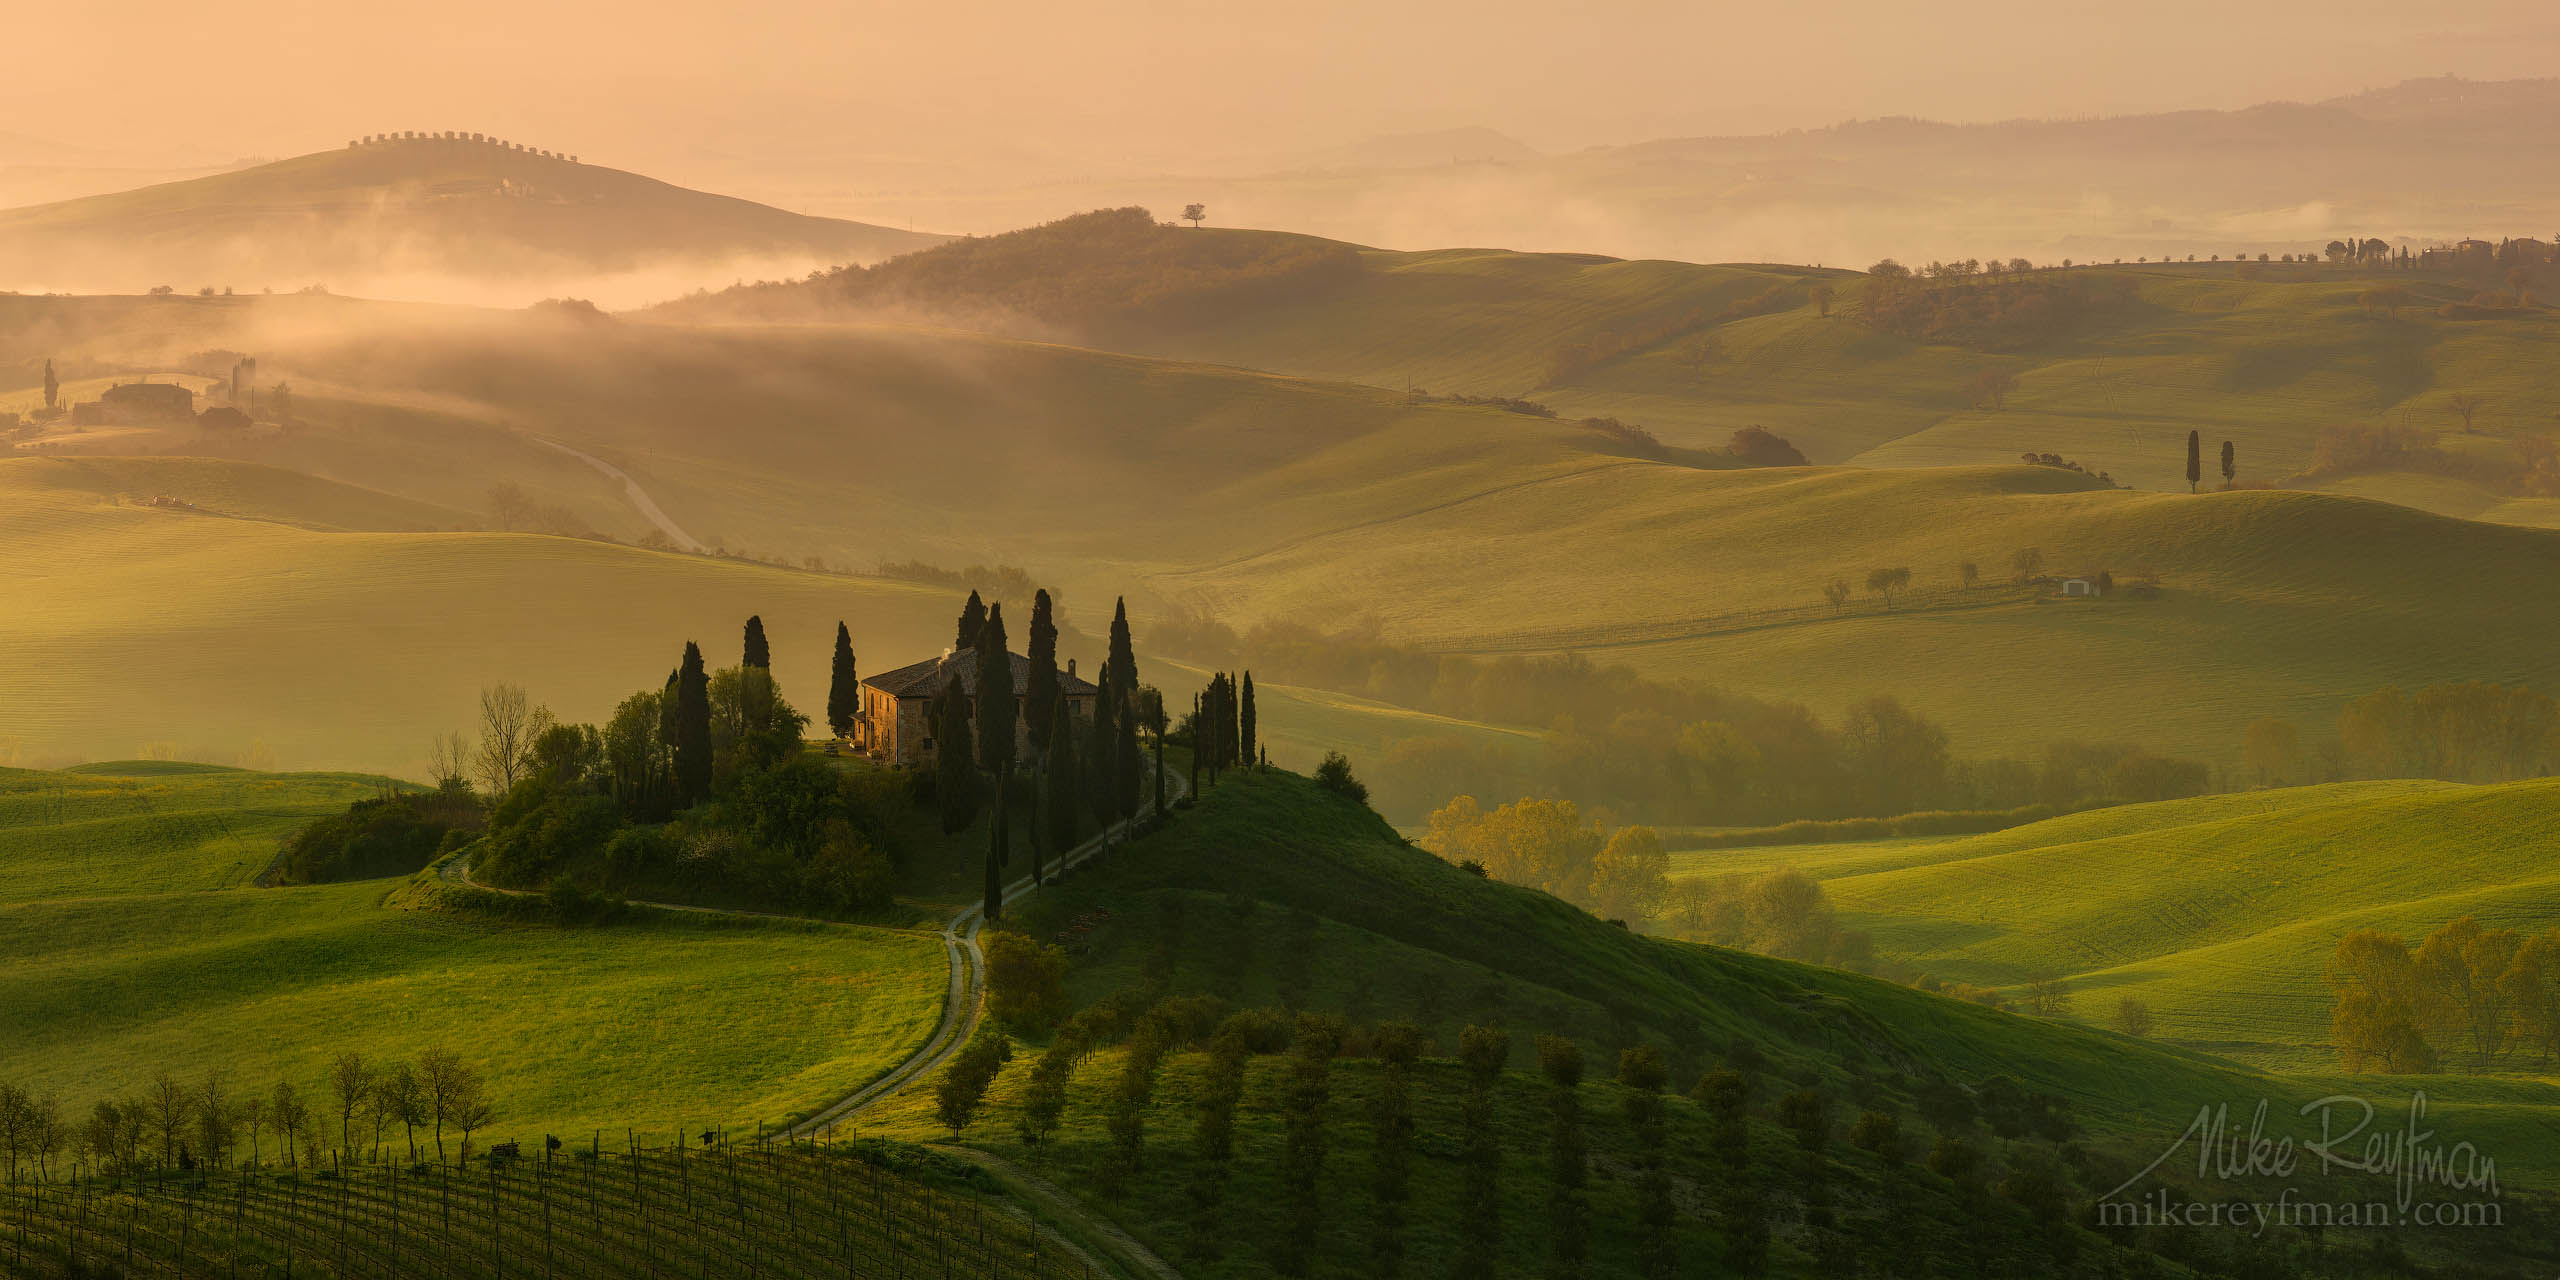 Villa Podere Belvedere at sunrise. Val d'Orcia, Tuscany, Italy P12-MRD8A8611-20-Pano - Selected panoramic images with 2:1 aspect ratio - Mike Reyfman Photography